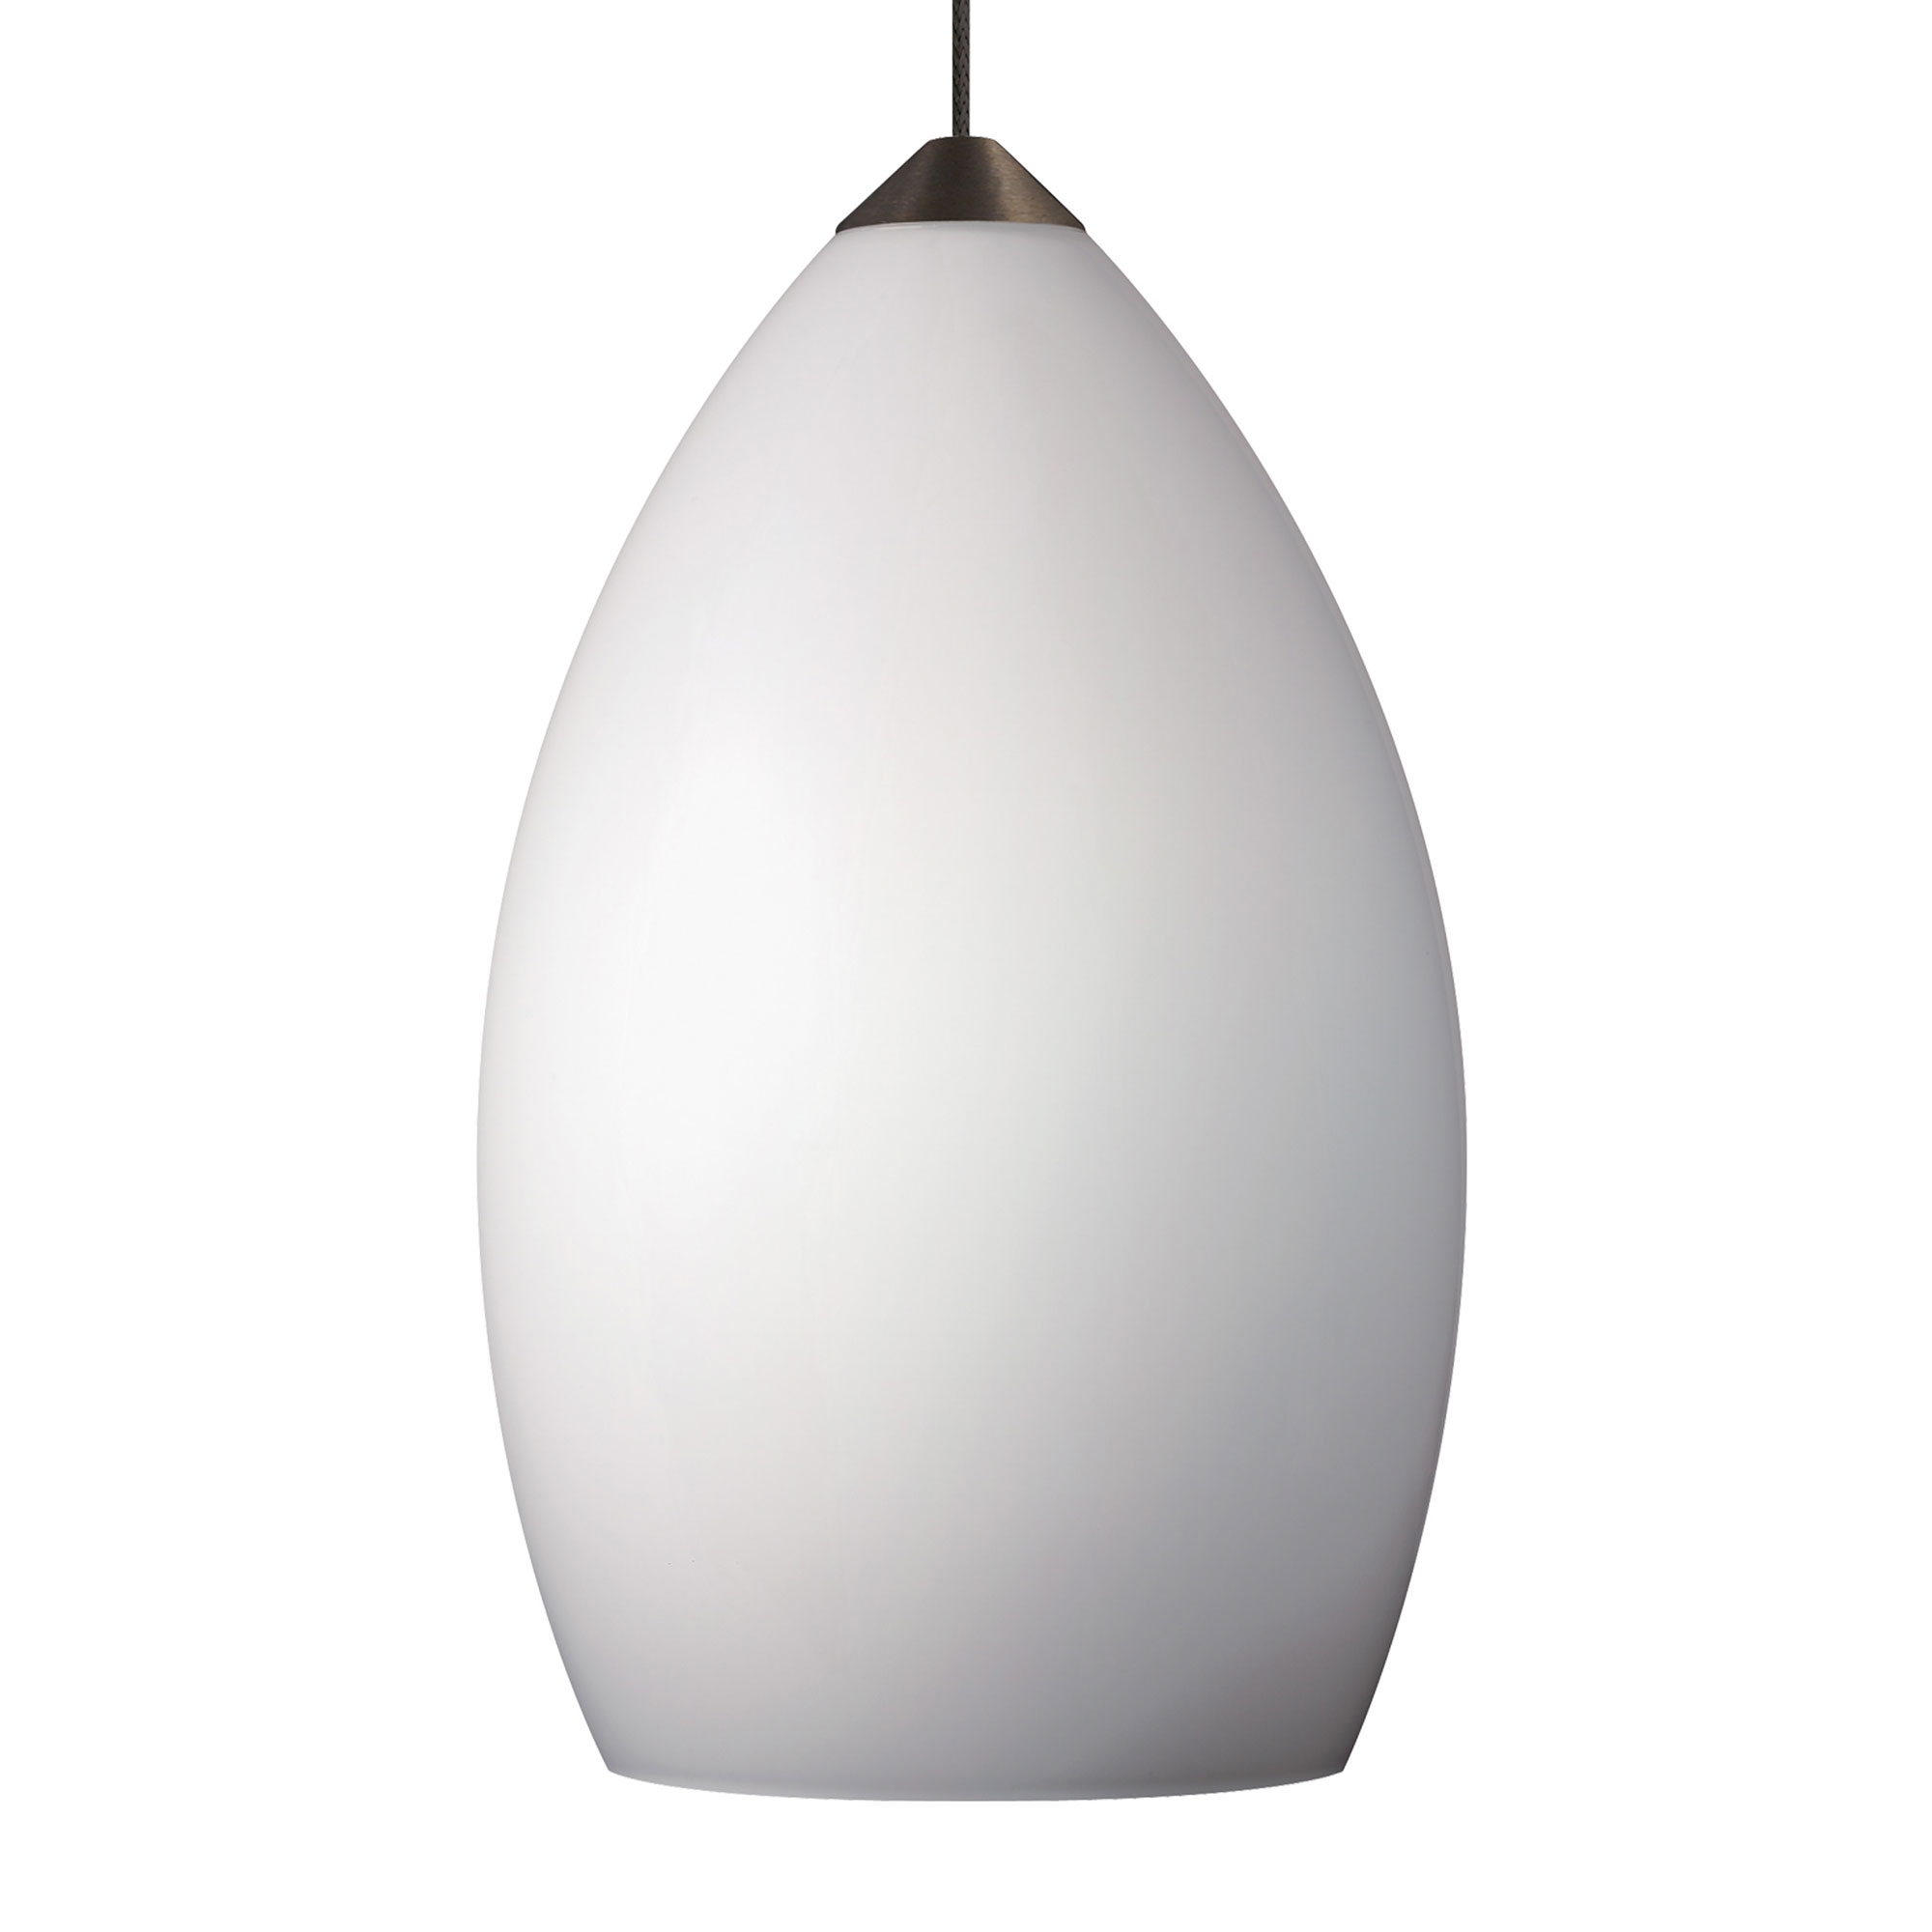 Kable Lite Led Firefrost Pendant By Tech Lighting 700klfirfws Leds930